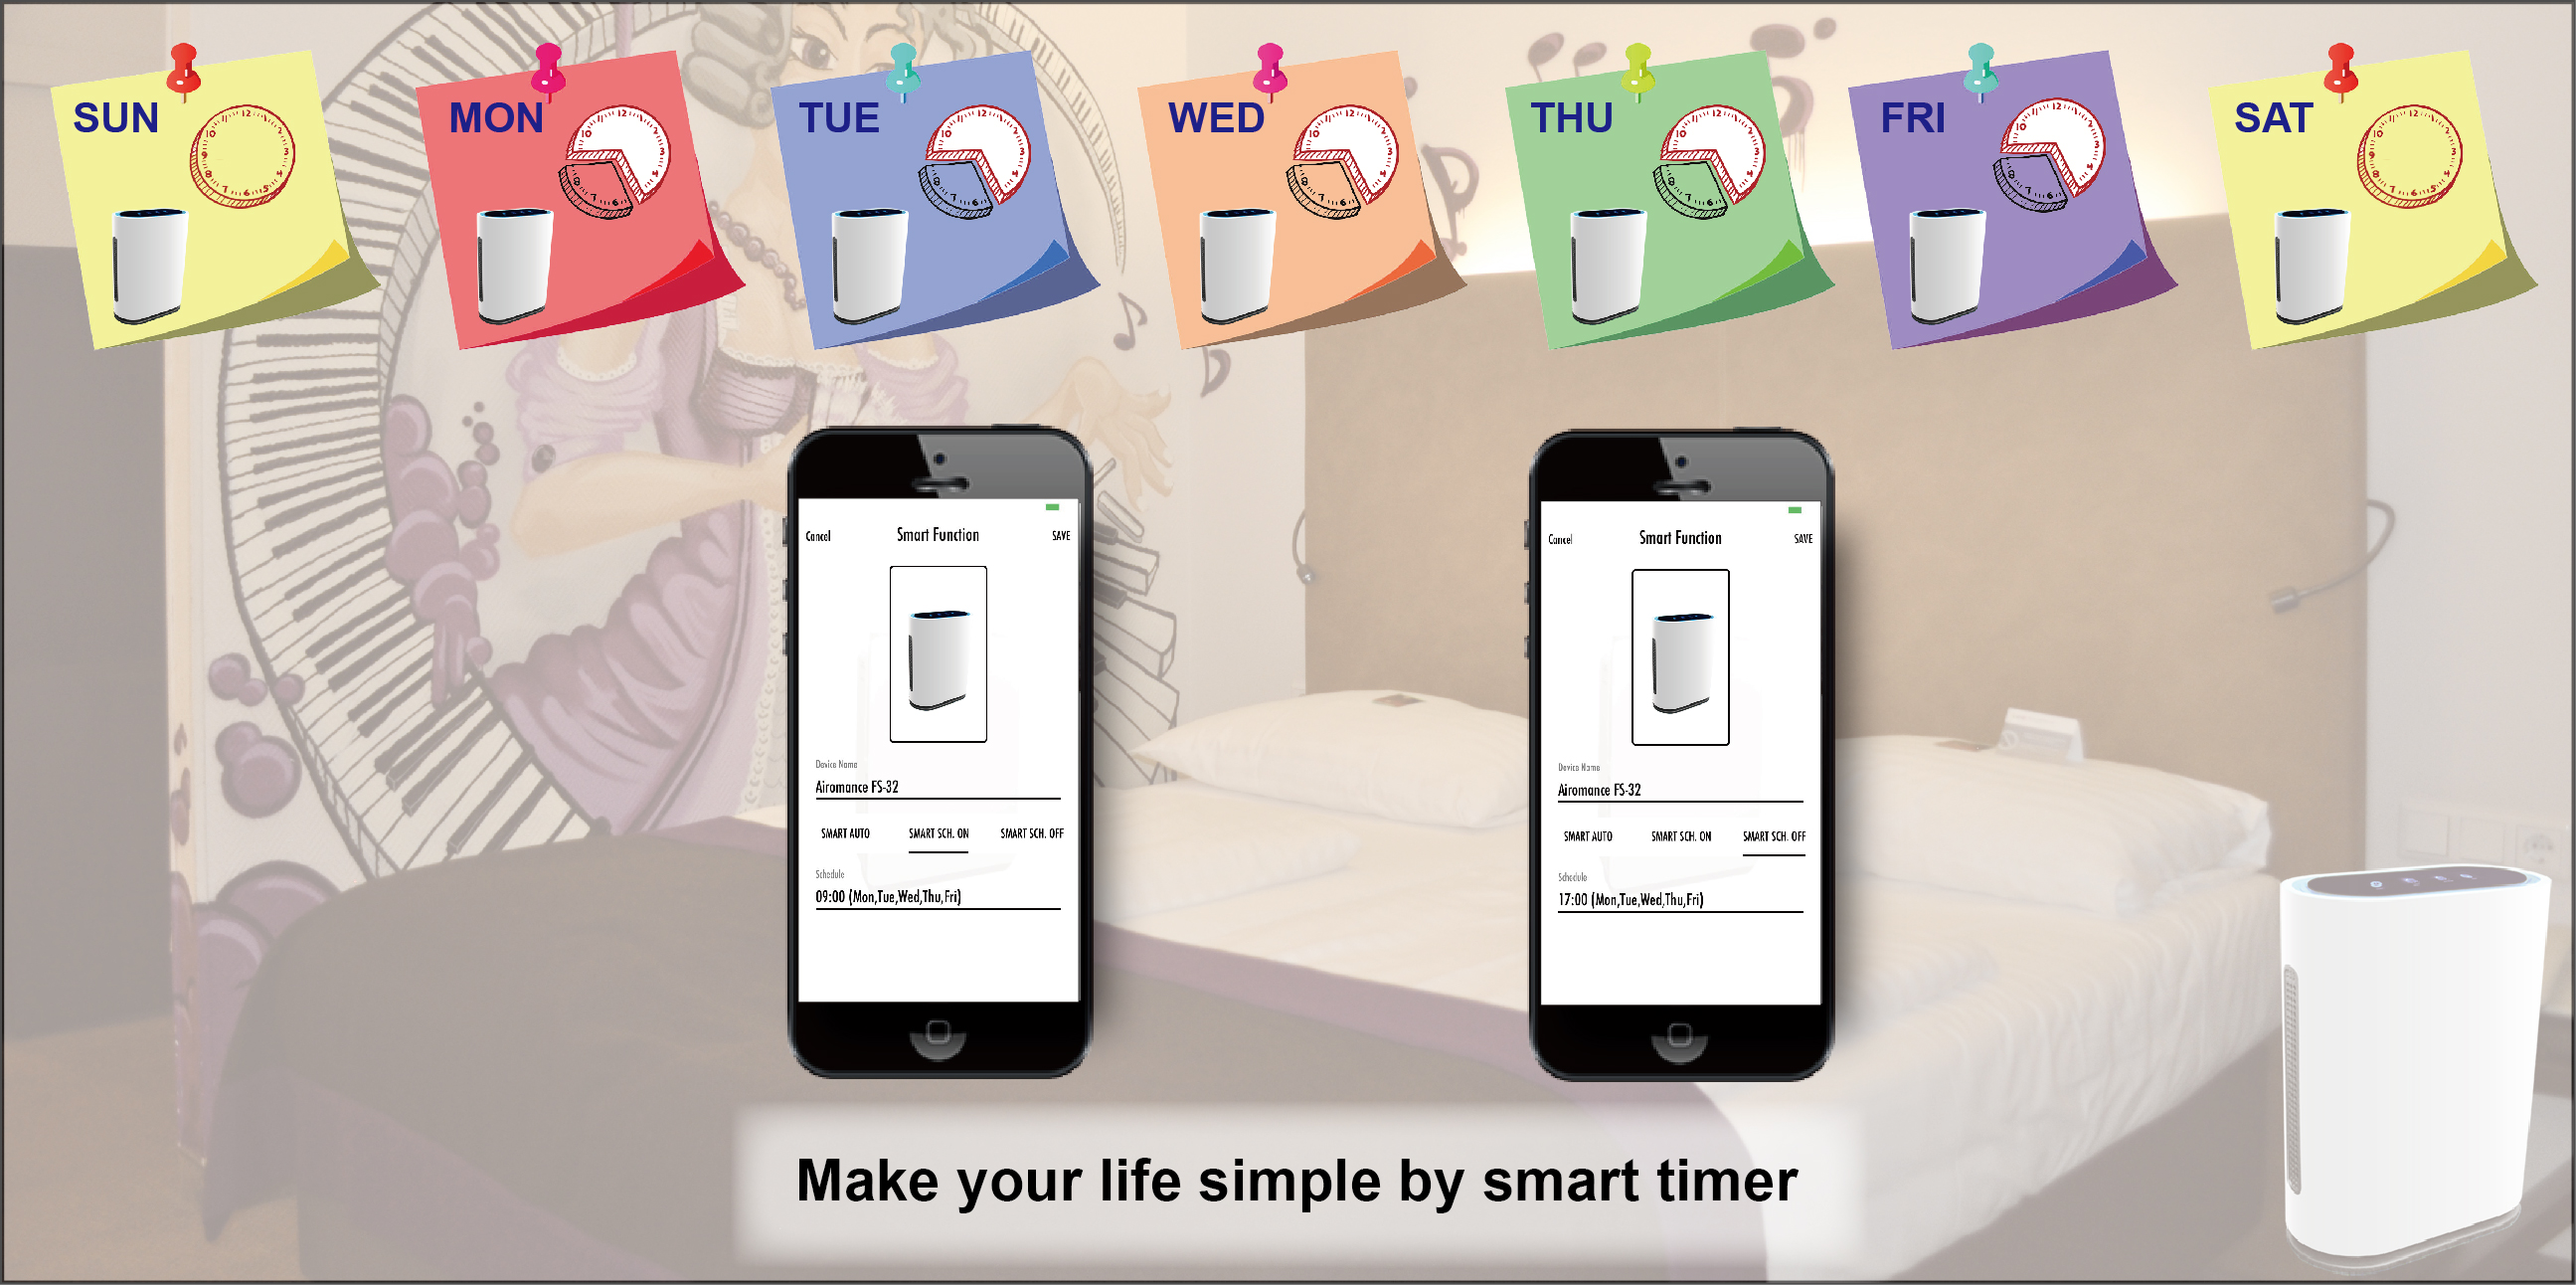 Make your life simple by smart timer 20160518